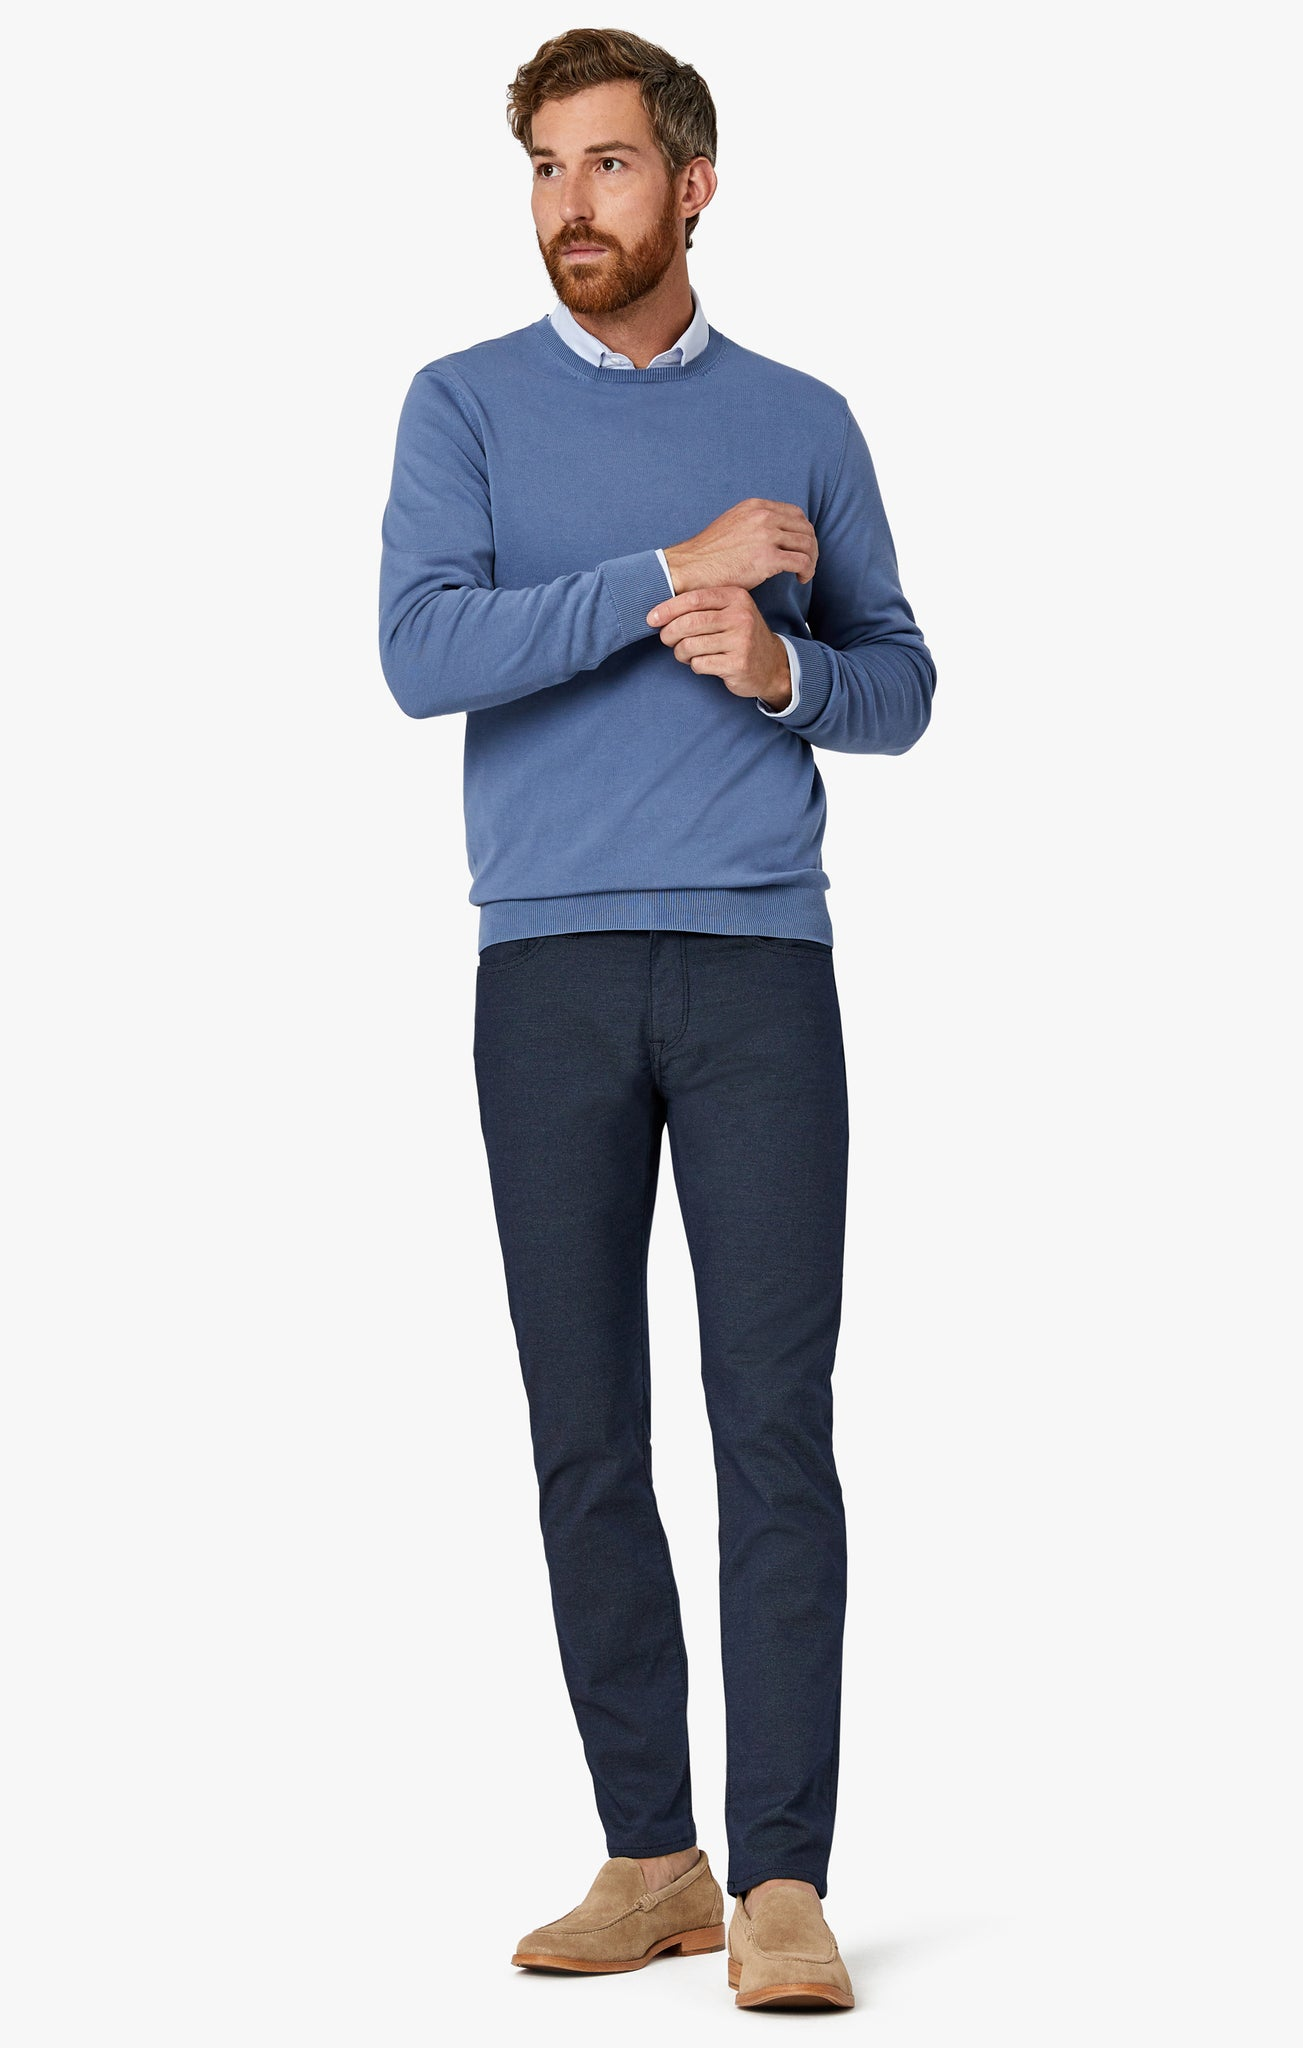 Courage Straight Leg Pants in Navy Coolmax